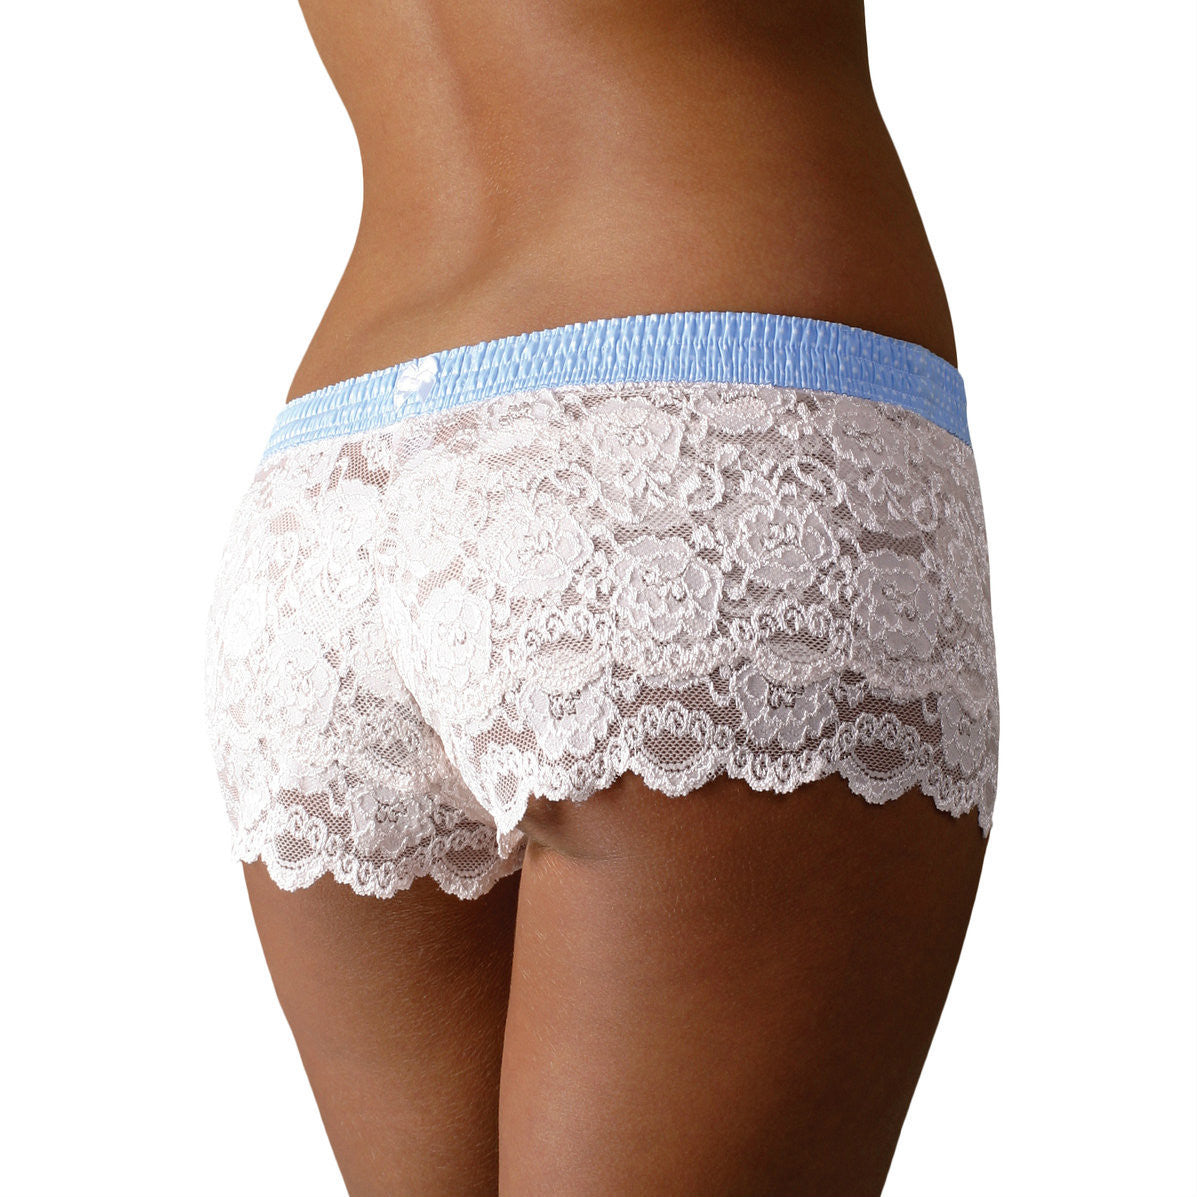 Foxers Ivory Lace Boxers with a Light Blue Dot Band - Knickers & Pearls Boutique - 1